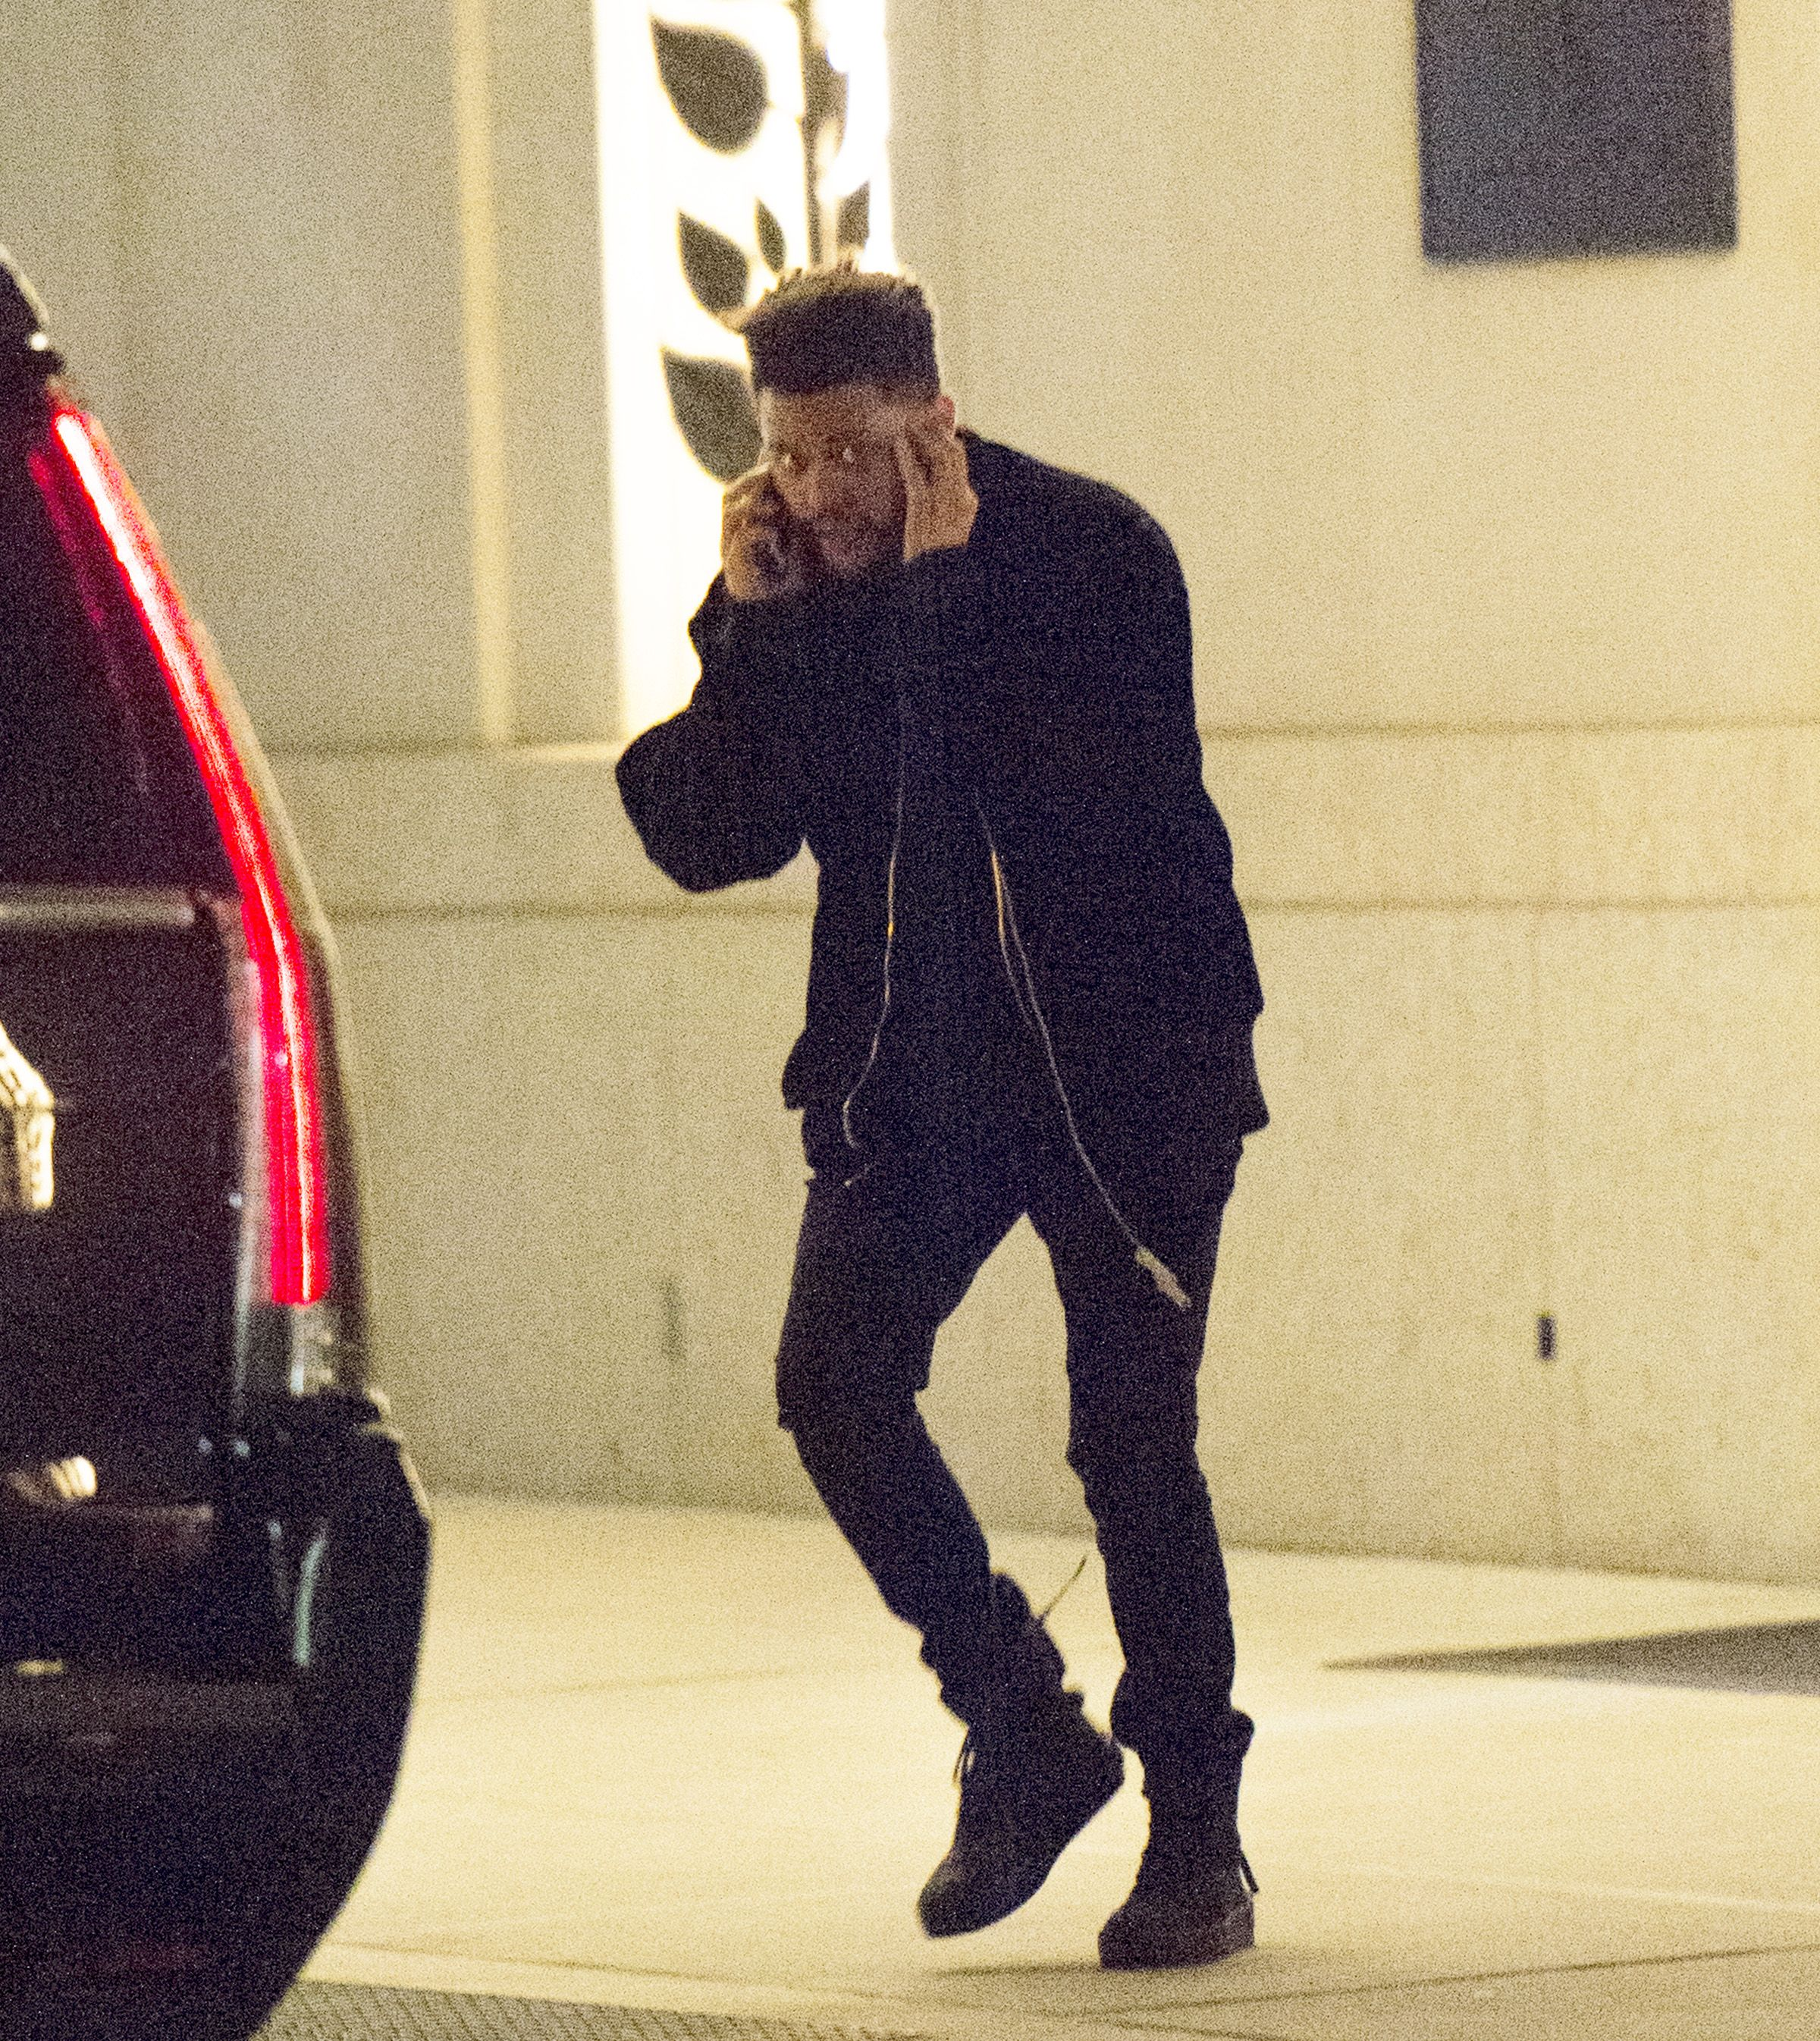 The Weeknd leaving Bella Hadid's apartment